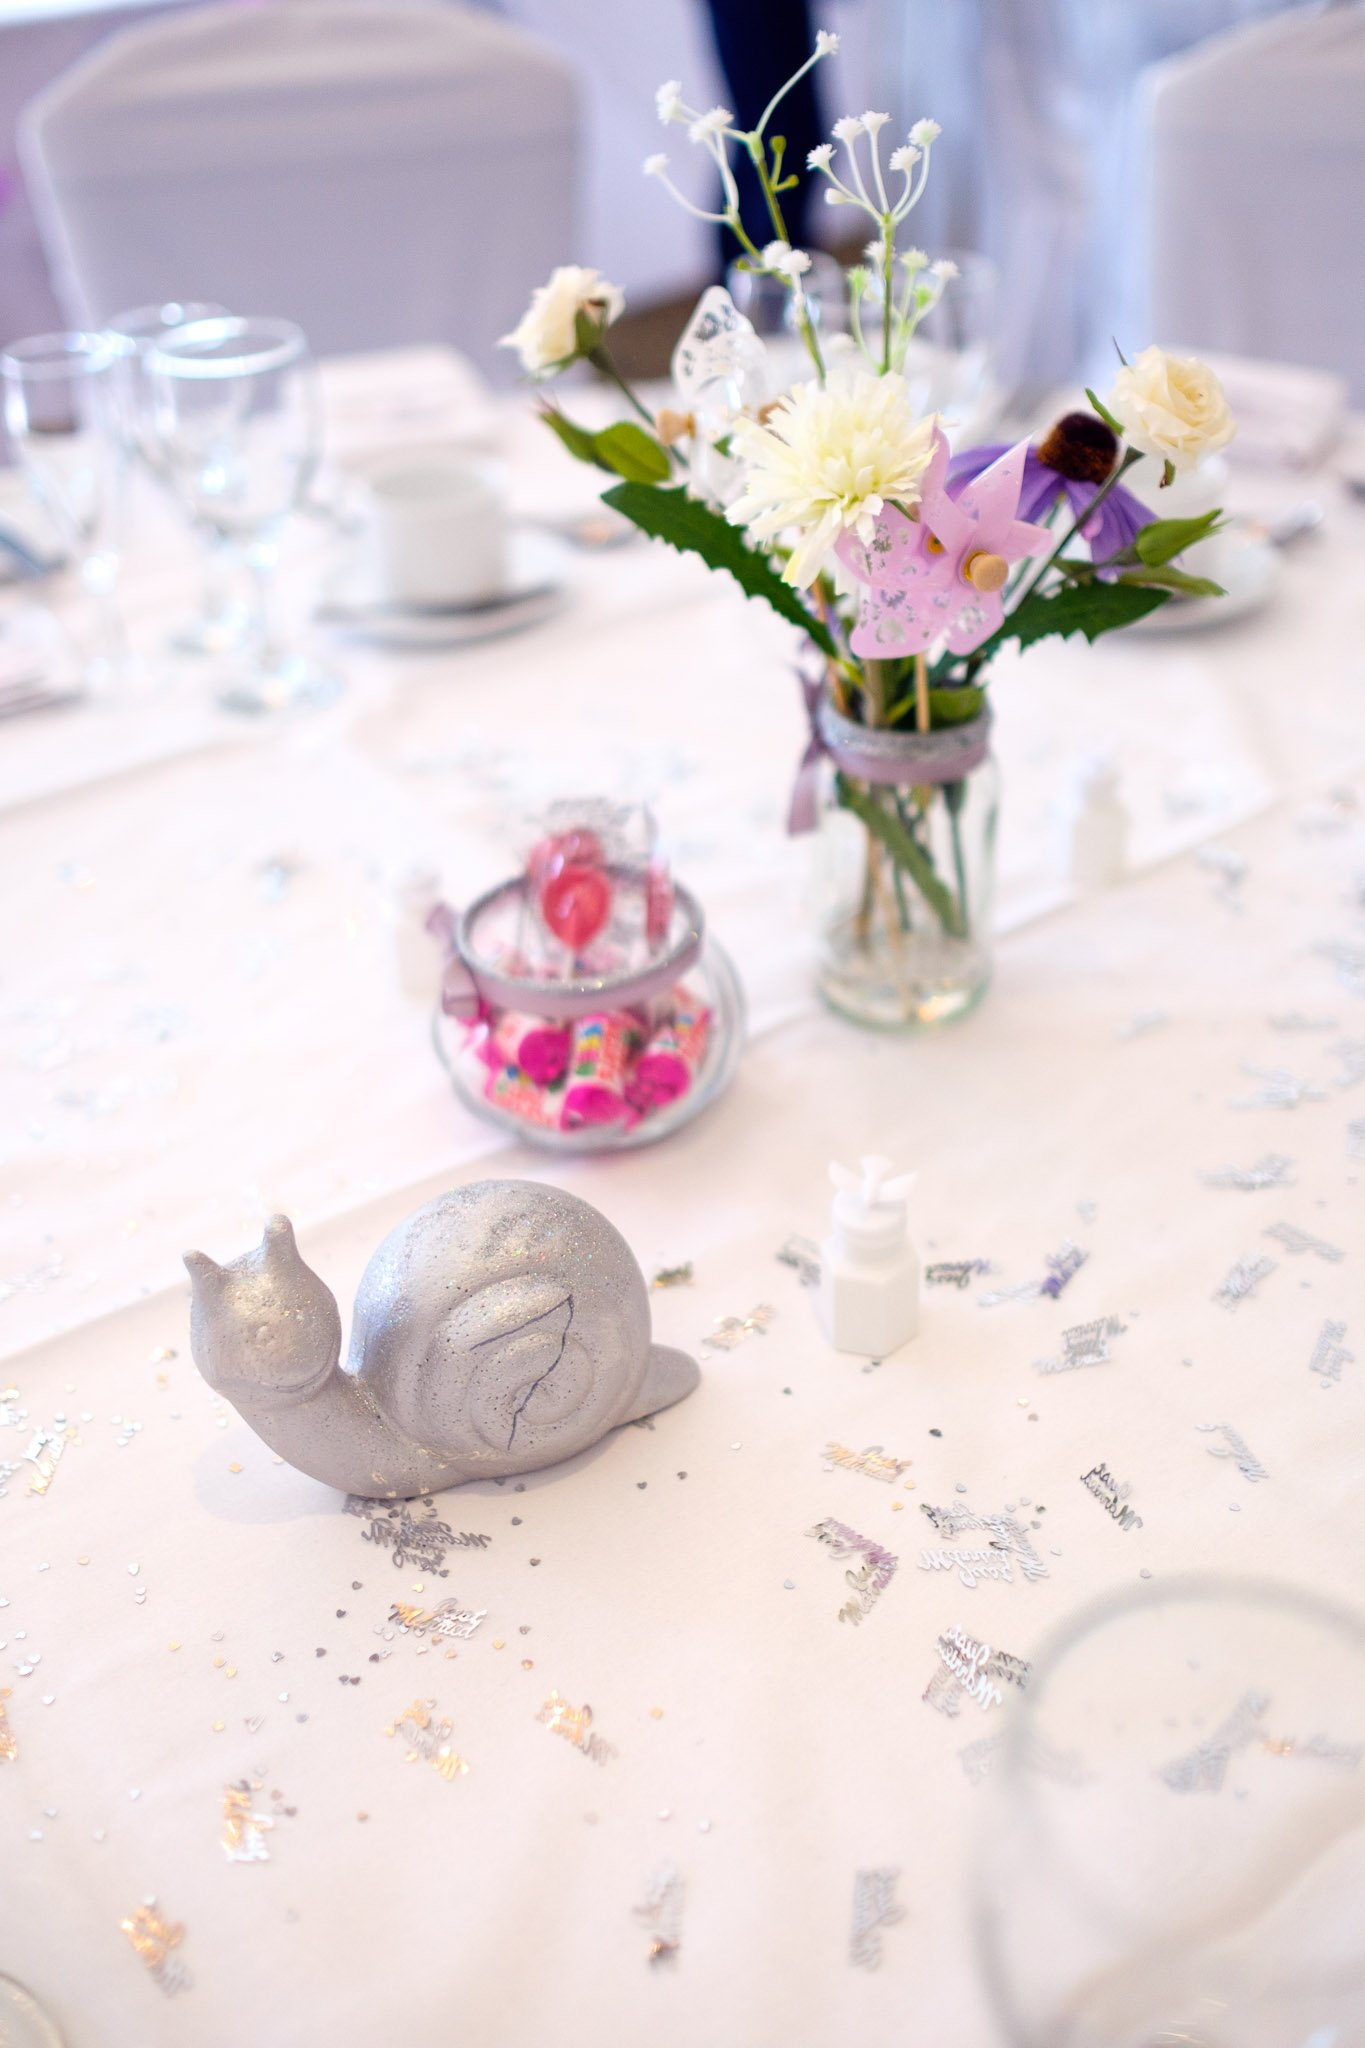 Snail Wedding table decoration at Orsett Hall Hotel Essex